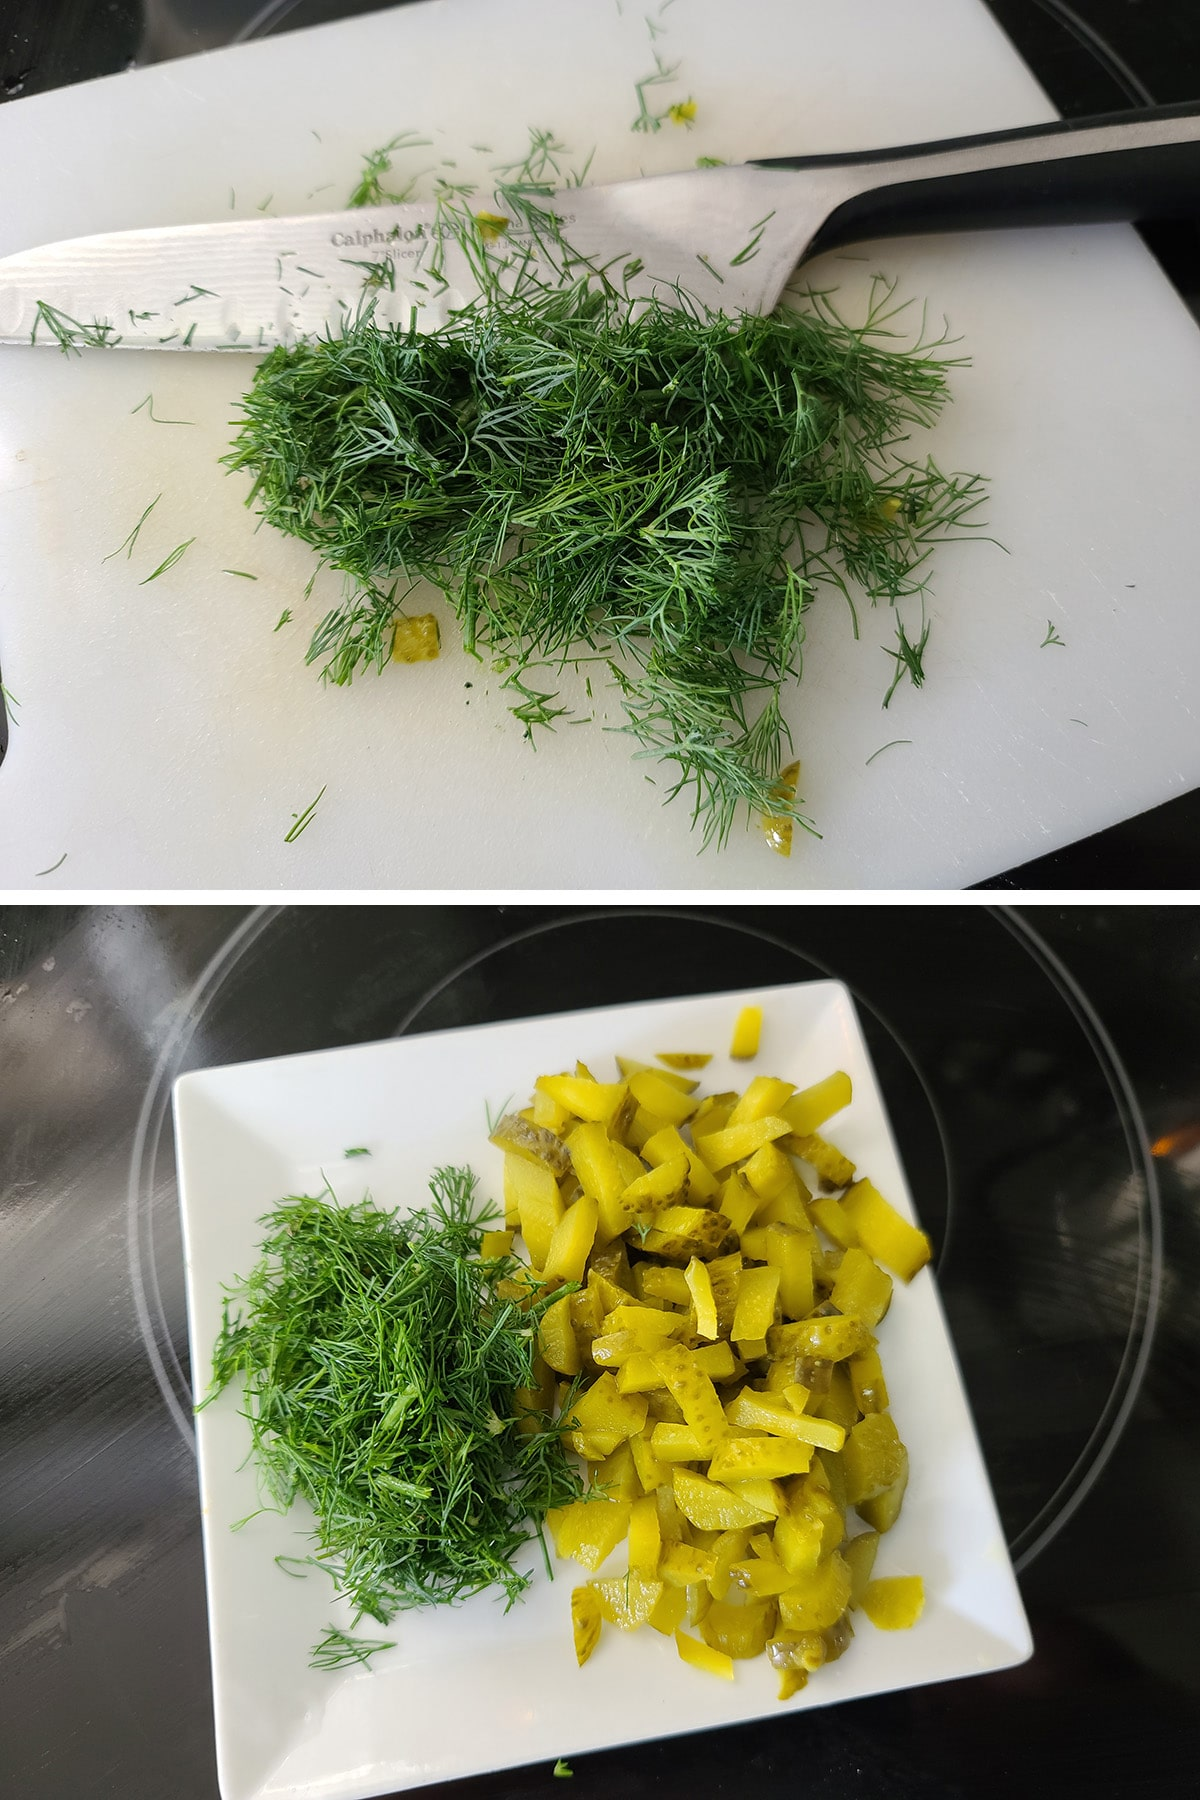 A two part compilation image showing dill being chopped on a cutting board, then chopped dill and sliced pickles on a small white plate together.